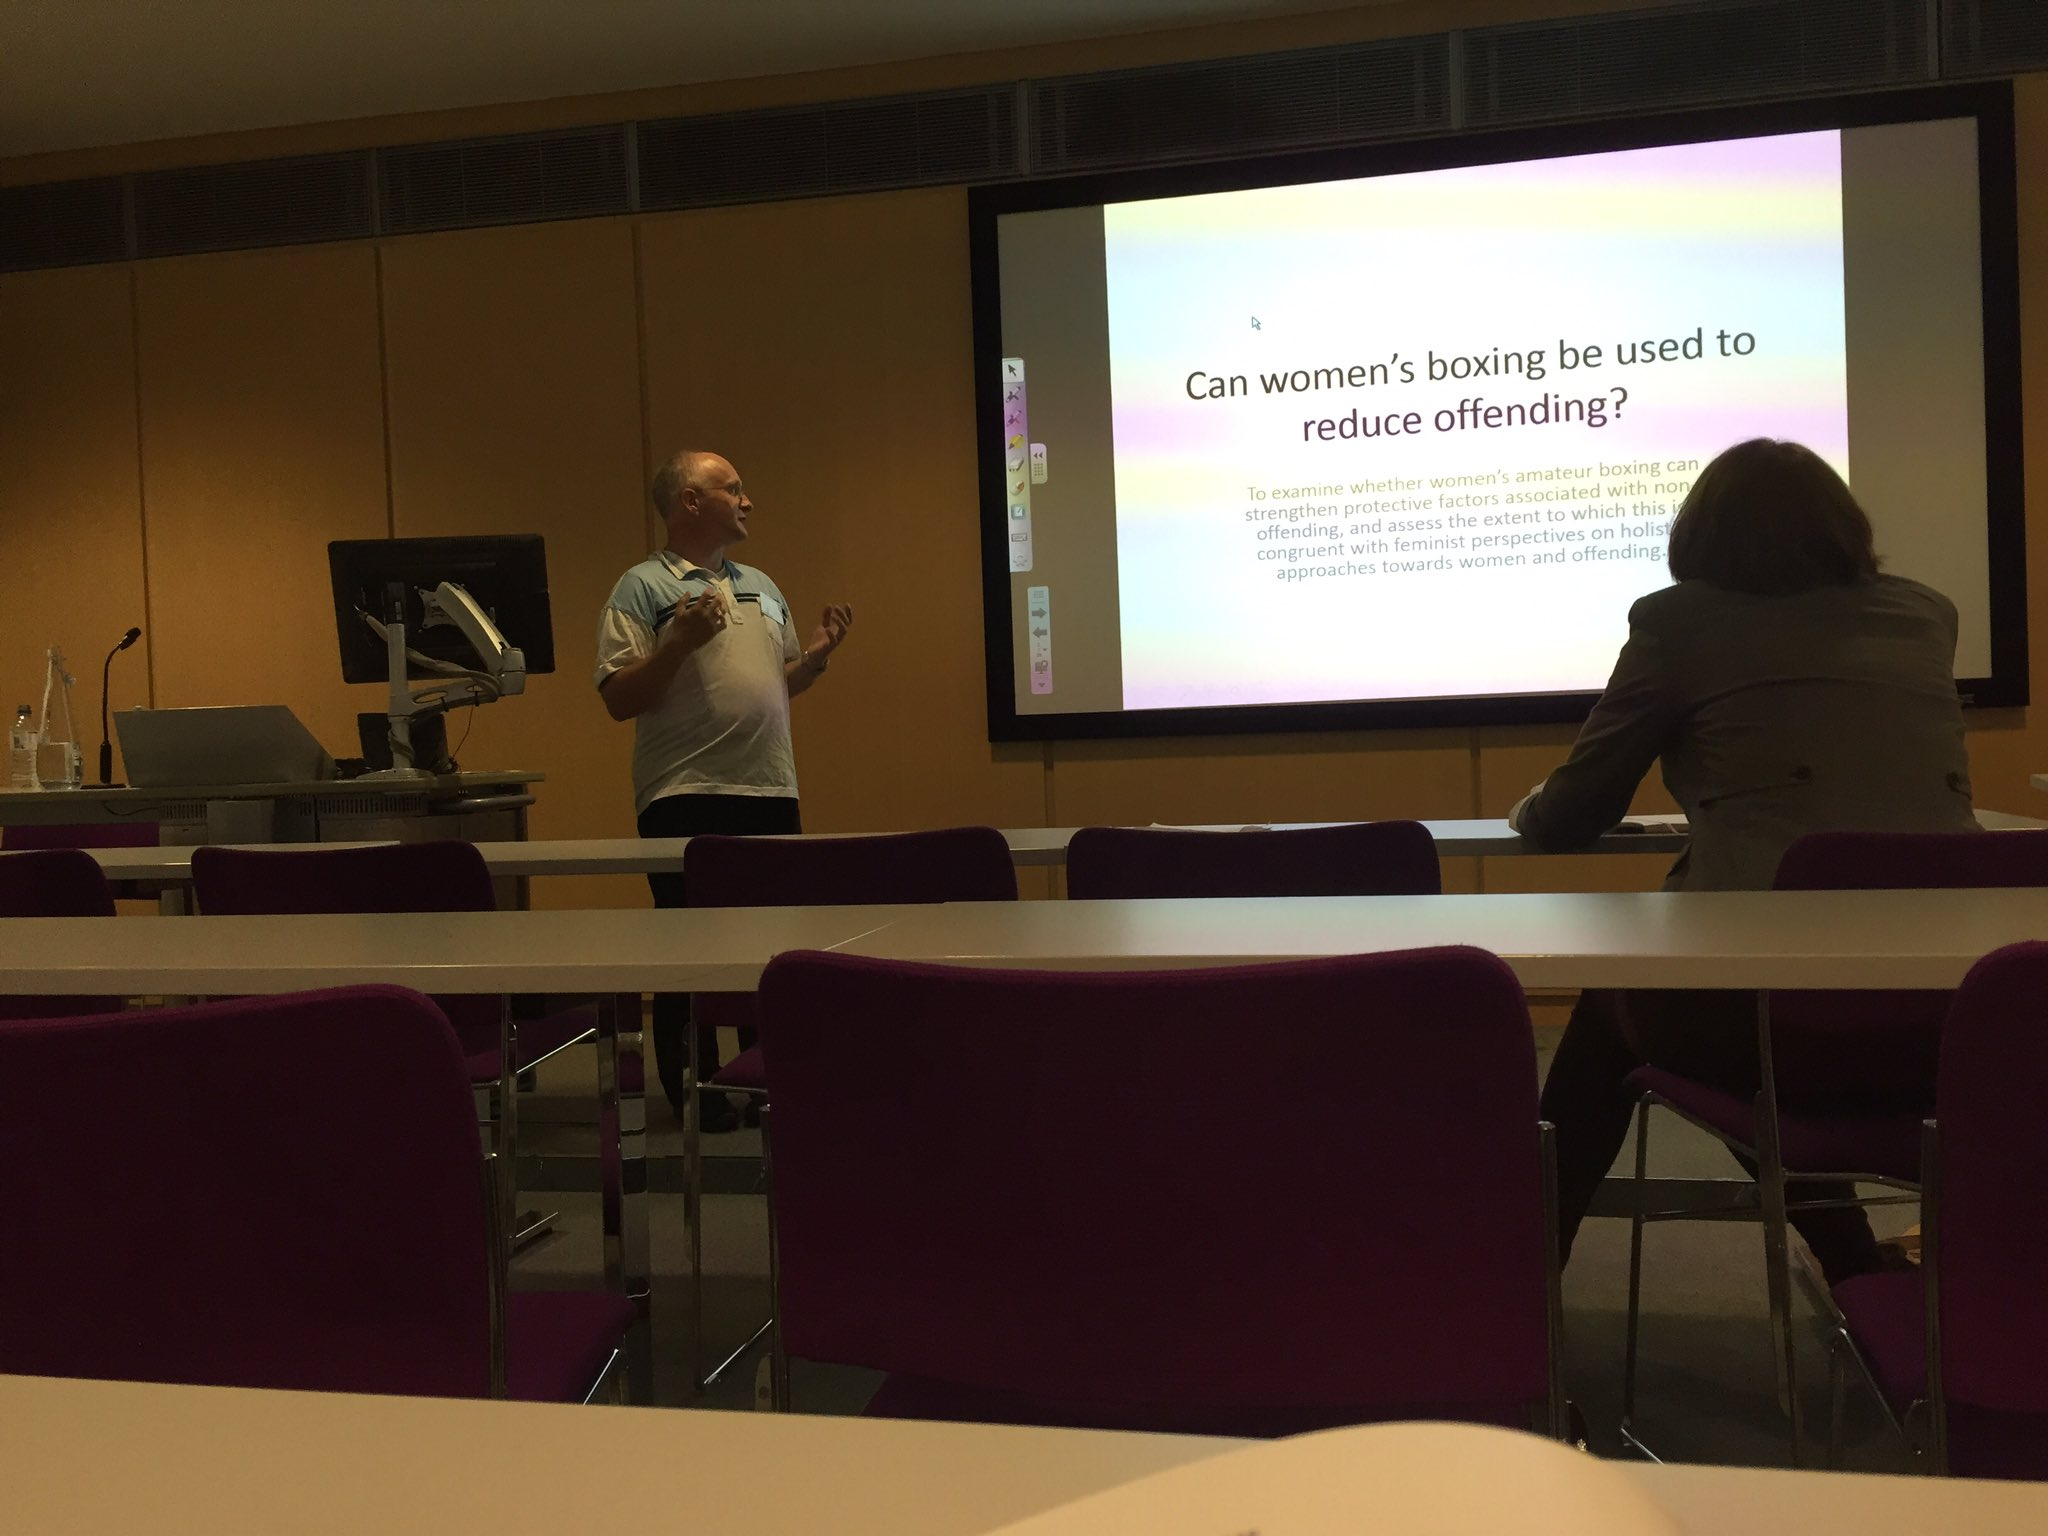 Michael Bryden presents paper in women's boxing  #BSCConf16 https://t.co/1v3JFcU1MZ